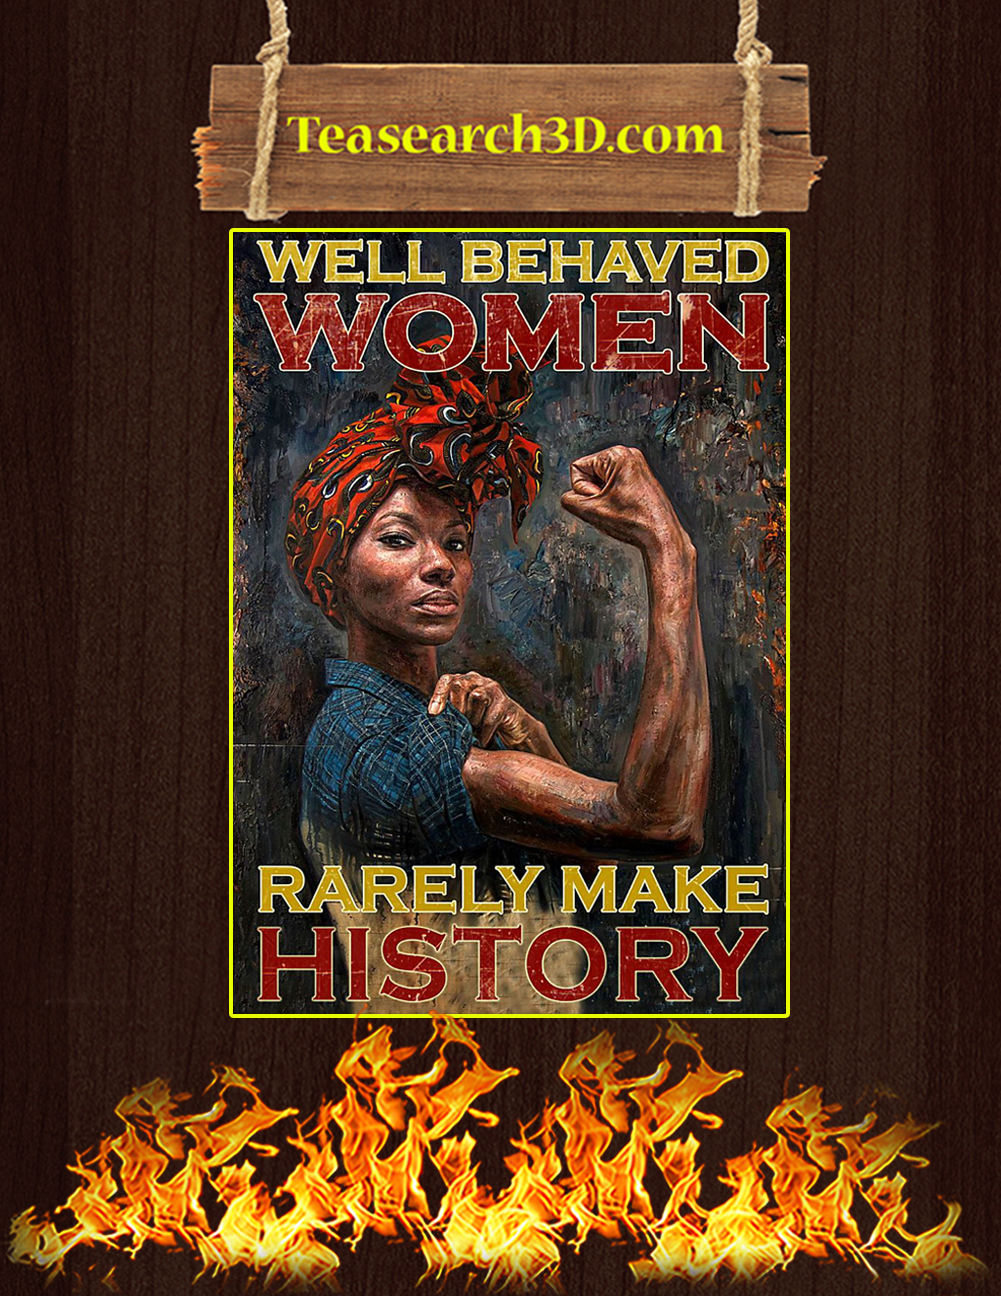 Well behaved black women rarely make history poster